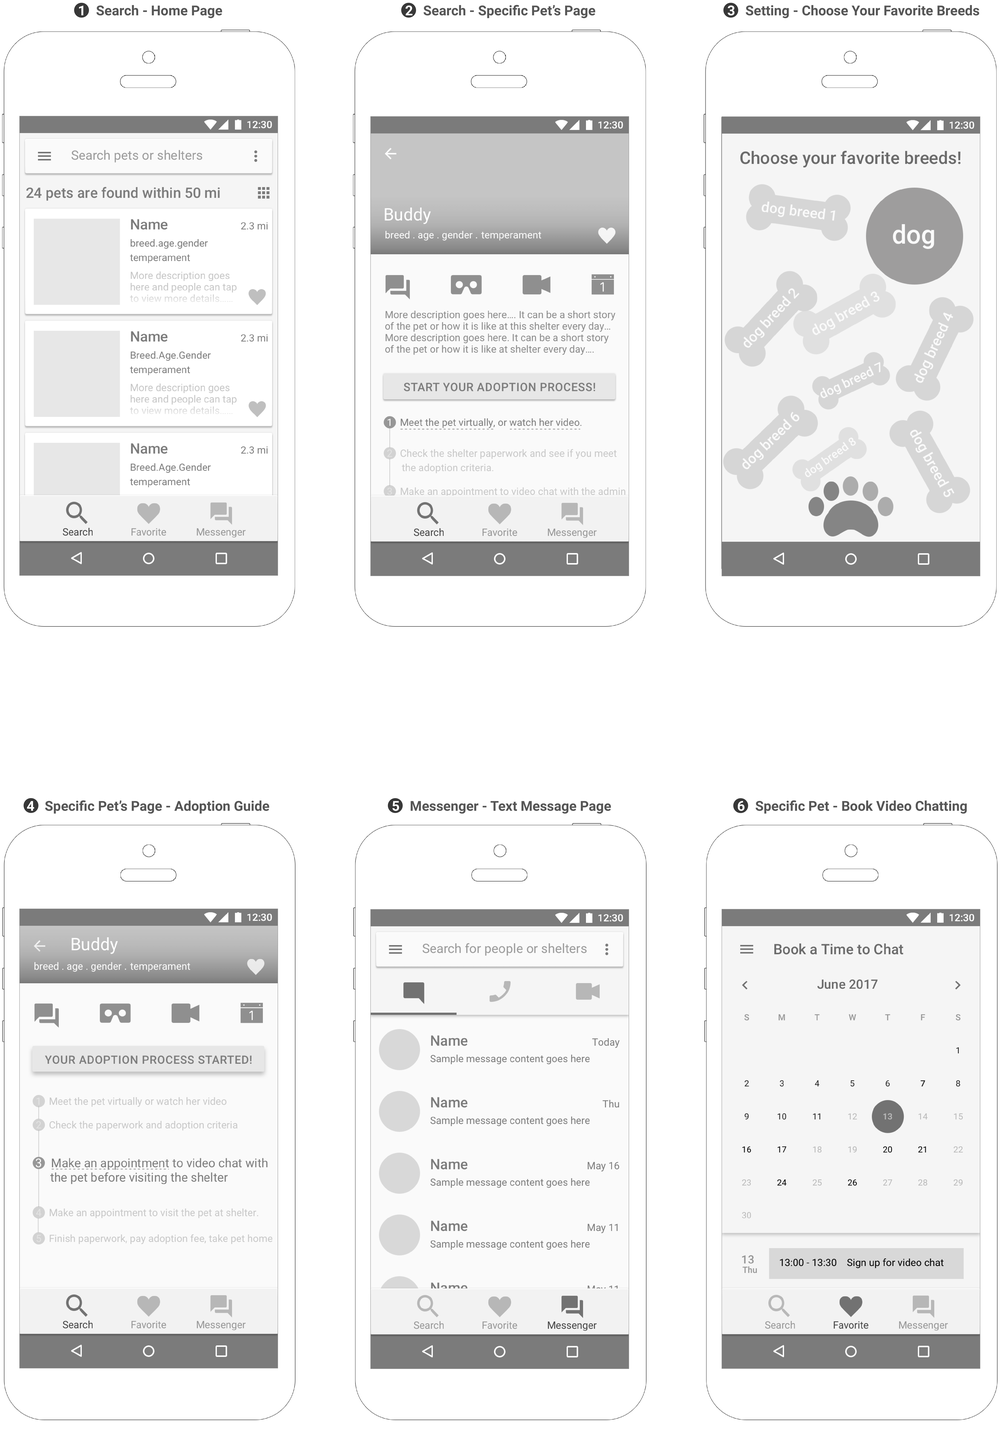 google_pet_wireframes-02.png